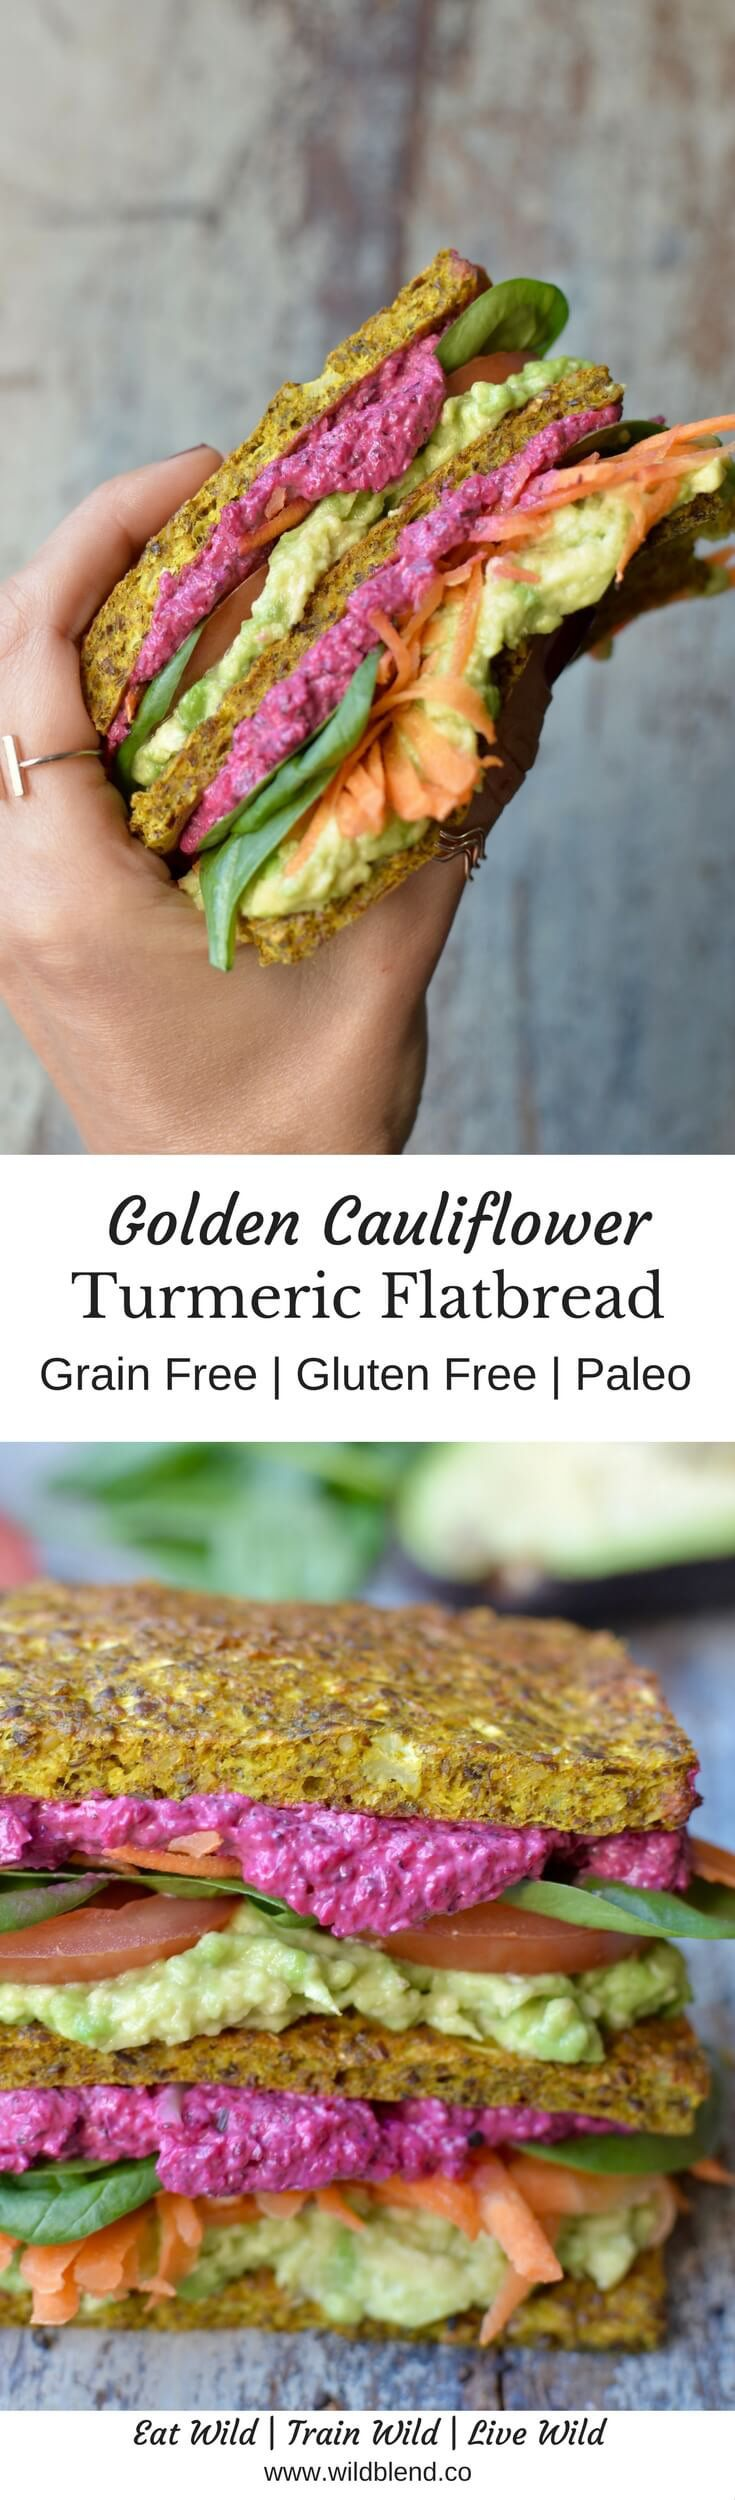 This grain-free, low-carb and veggie-packed flatbread has become a  family favourite in my house. It's a no-fuss recipe that you can  literally whip up in a matter of 15 minutes. Get the recipe here: http://www.wildblend.co/single-post/Golden-Cauliflower-Flatbread-with-Healing-Turmeric